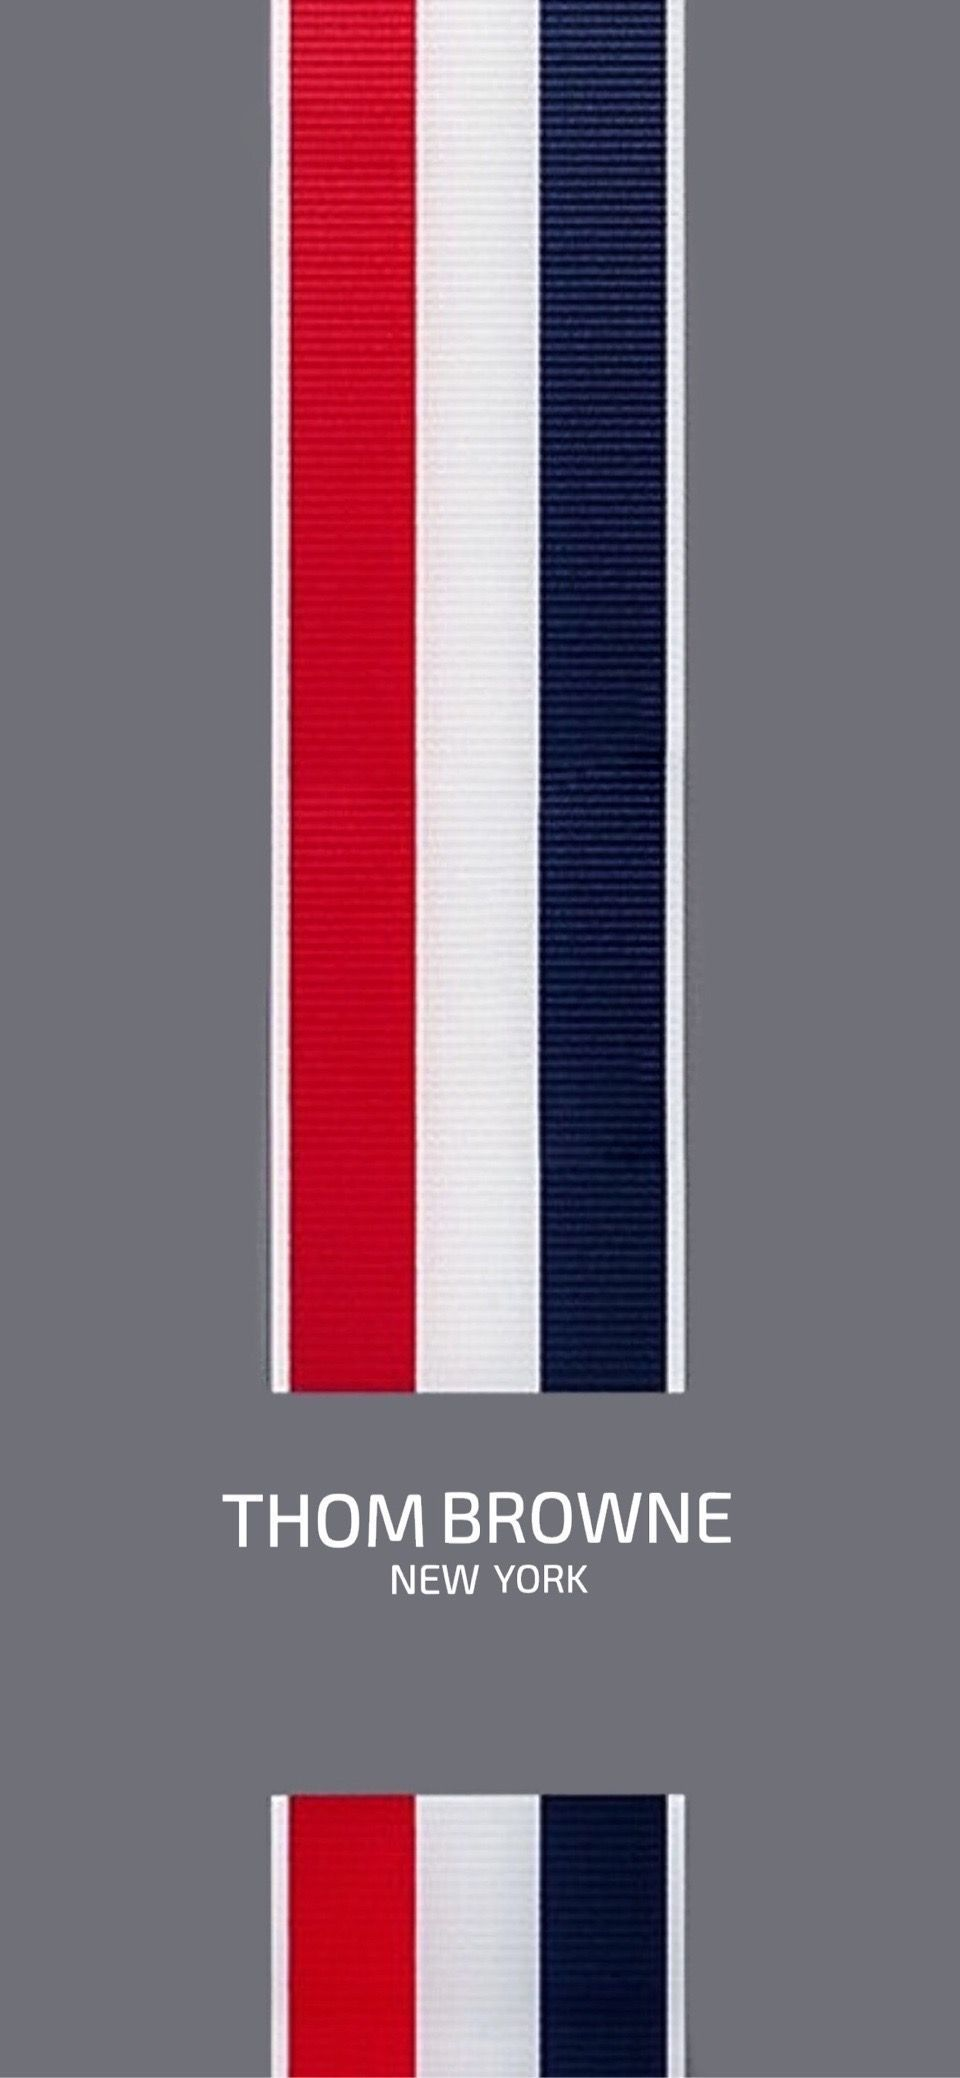 Thom Browne Wallpapers Top Free Thom Browne Backgrounds Wallpaperaccess